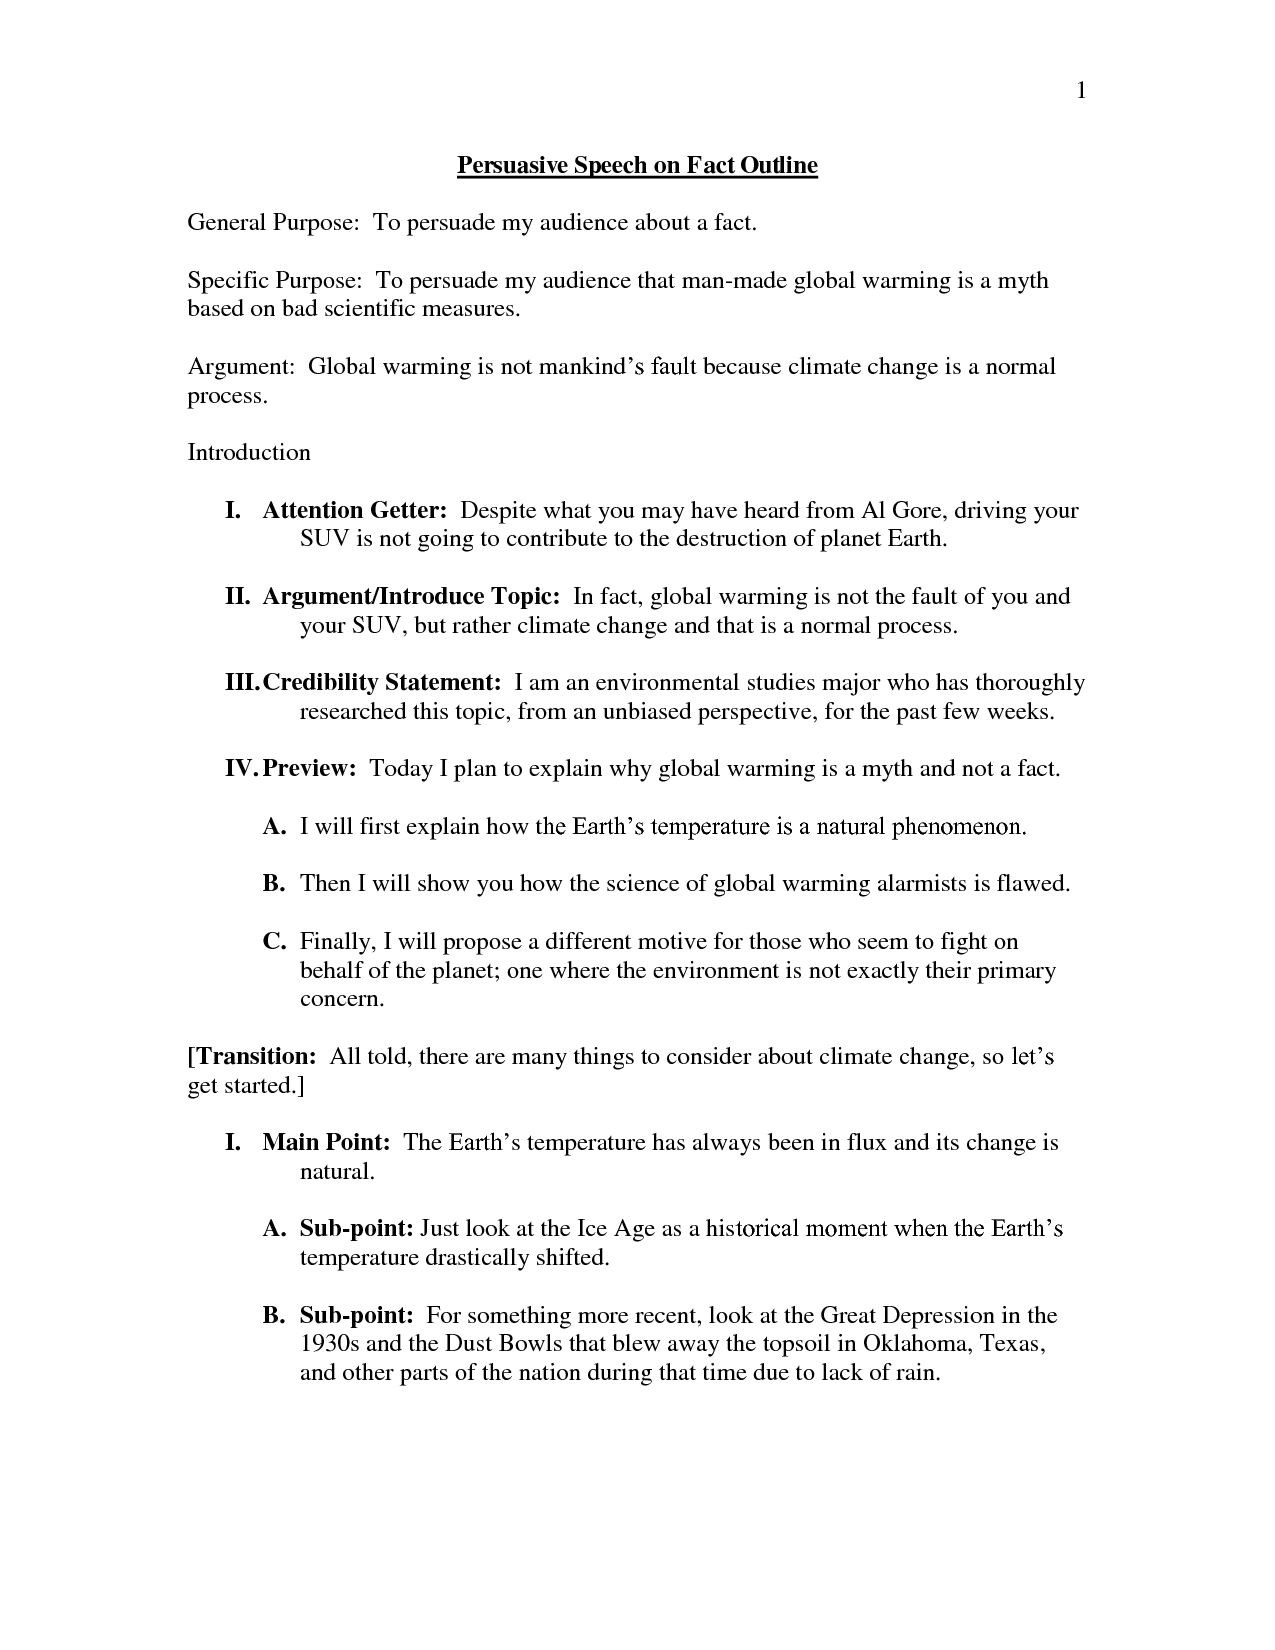 024 Essay Example Global Warming Persuasive Outline Of How To Write An Argumentative On Nova Myth Or F Nb5h37b5f7xx486xfzxx2yldnrsw266t4mxgg66nf86x1lldn8xh3zl44qxxk7dmn8qw37zpg3ydc4bpg2ys9z Top Apa Format Template Word 2010 Full